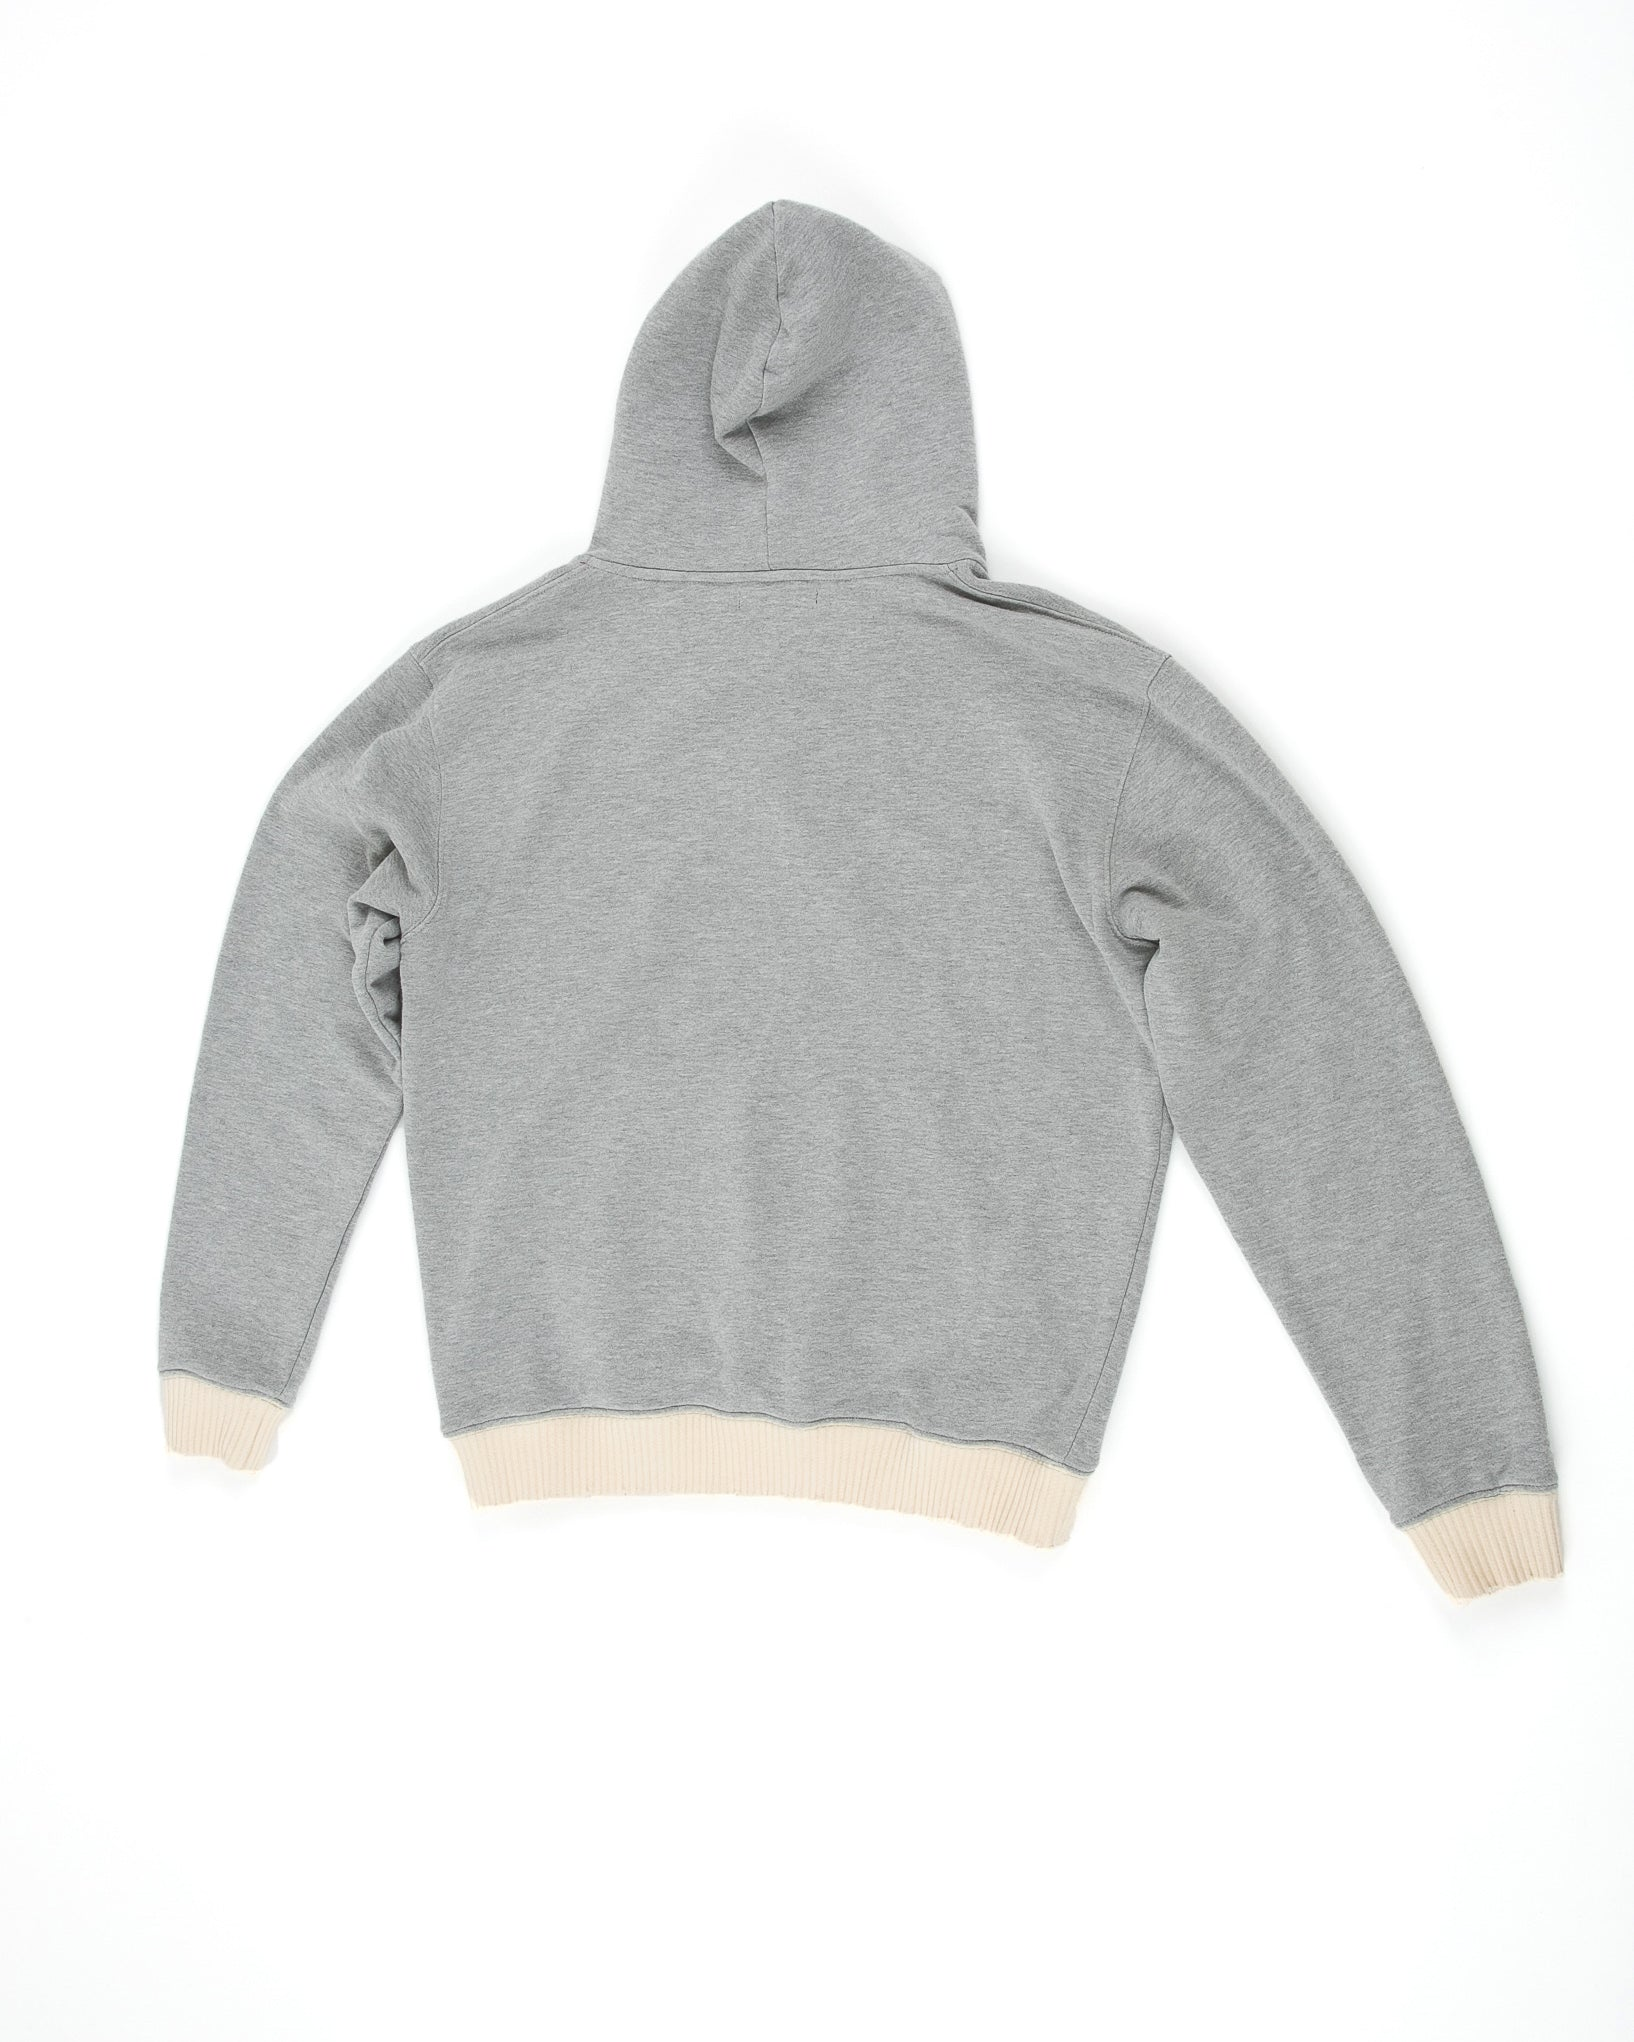 Back of Weighted Hoodie in Heather Grey